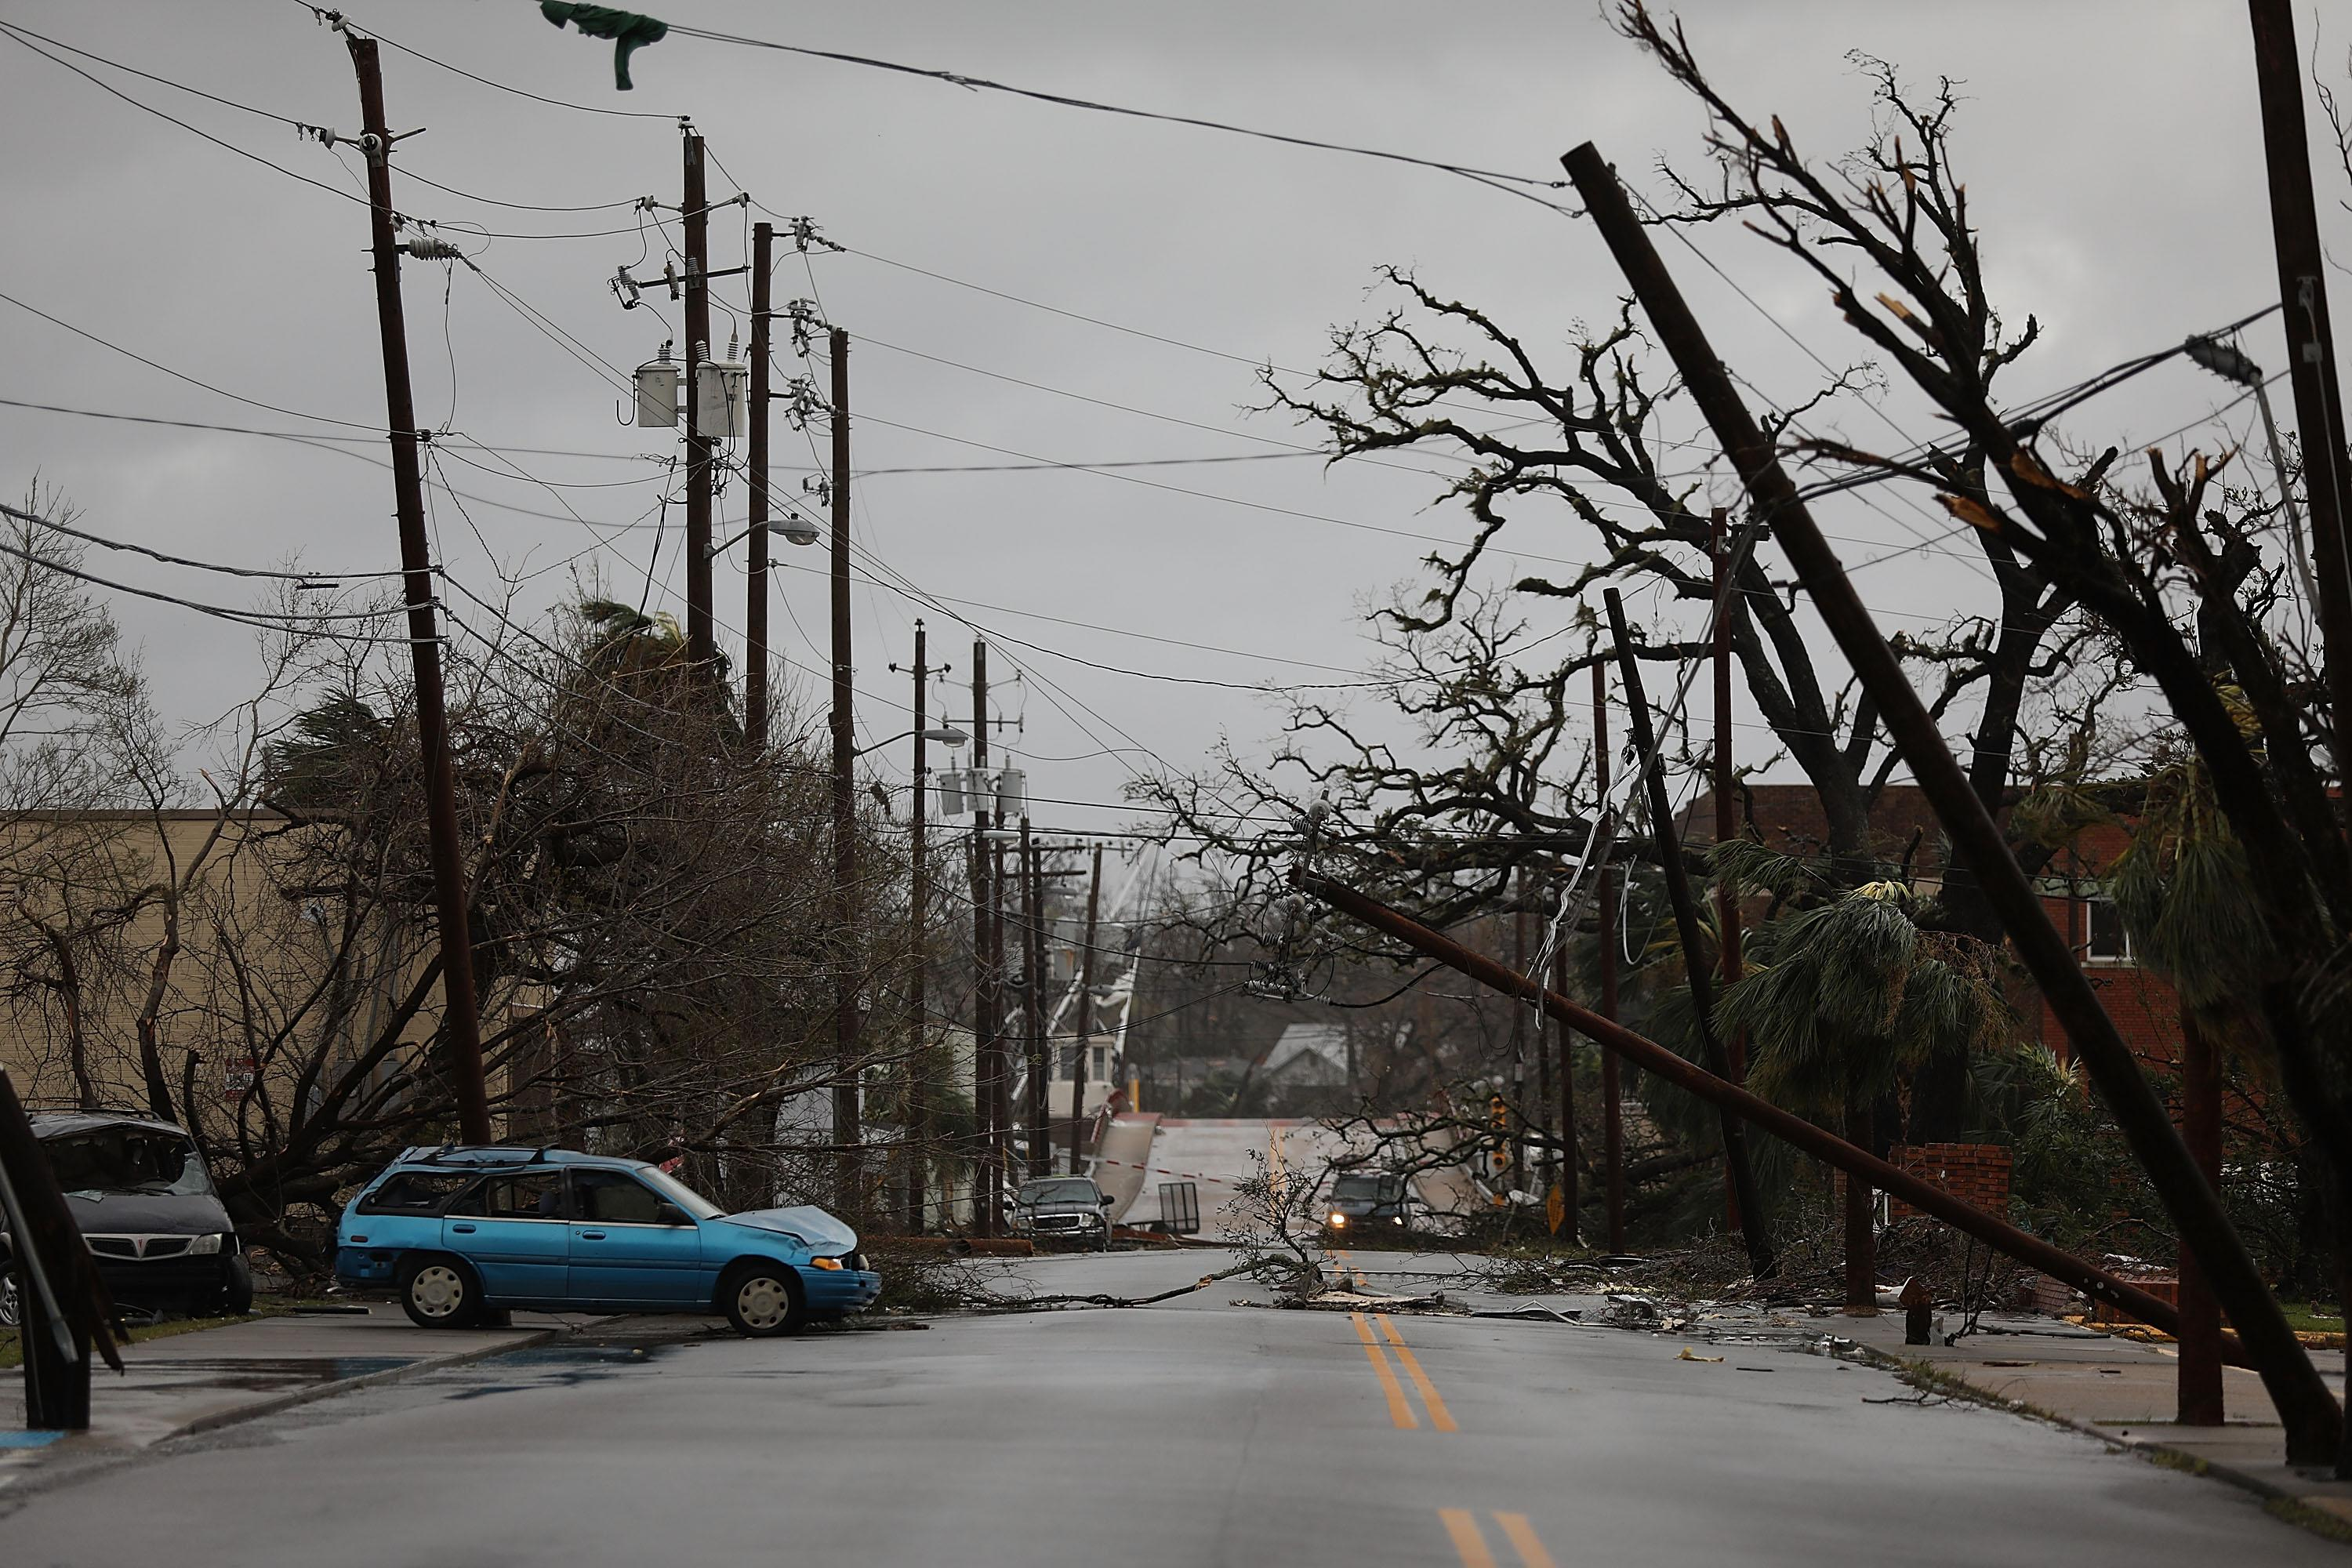 <p>Downed powerlines are seen after hurricane Michael passed through the downtown area on Oct. 10, 2018 in Panama City, Fla. (Photo: Joe Raedle/Getty Images) </p>